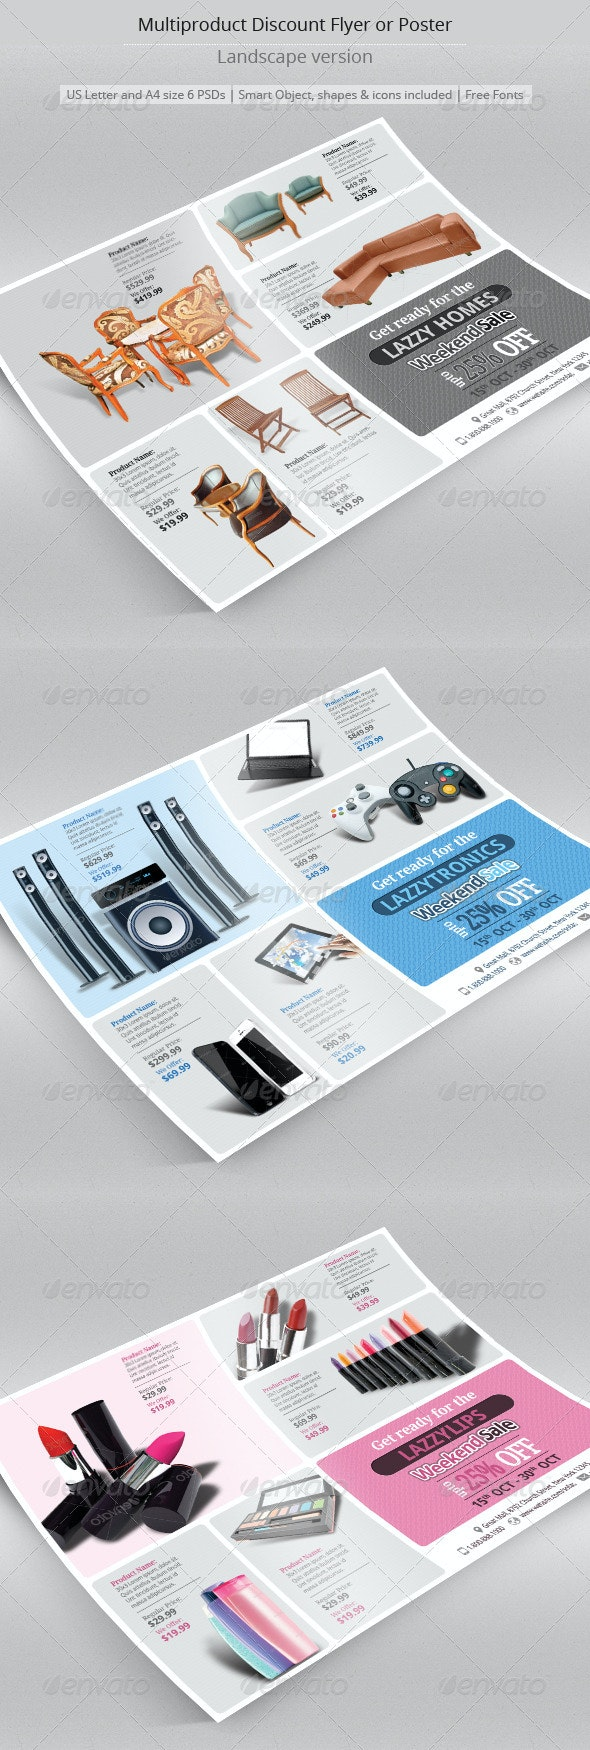 Multipurpose Discount Flyer or Poster - Flyers Print Templates